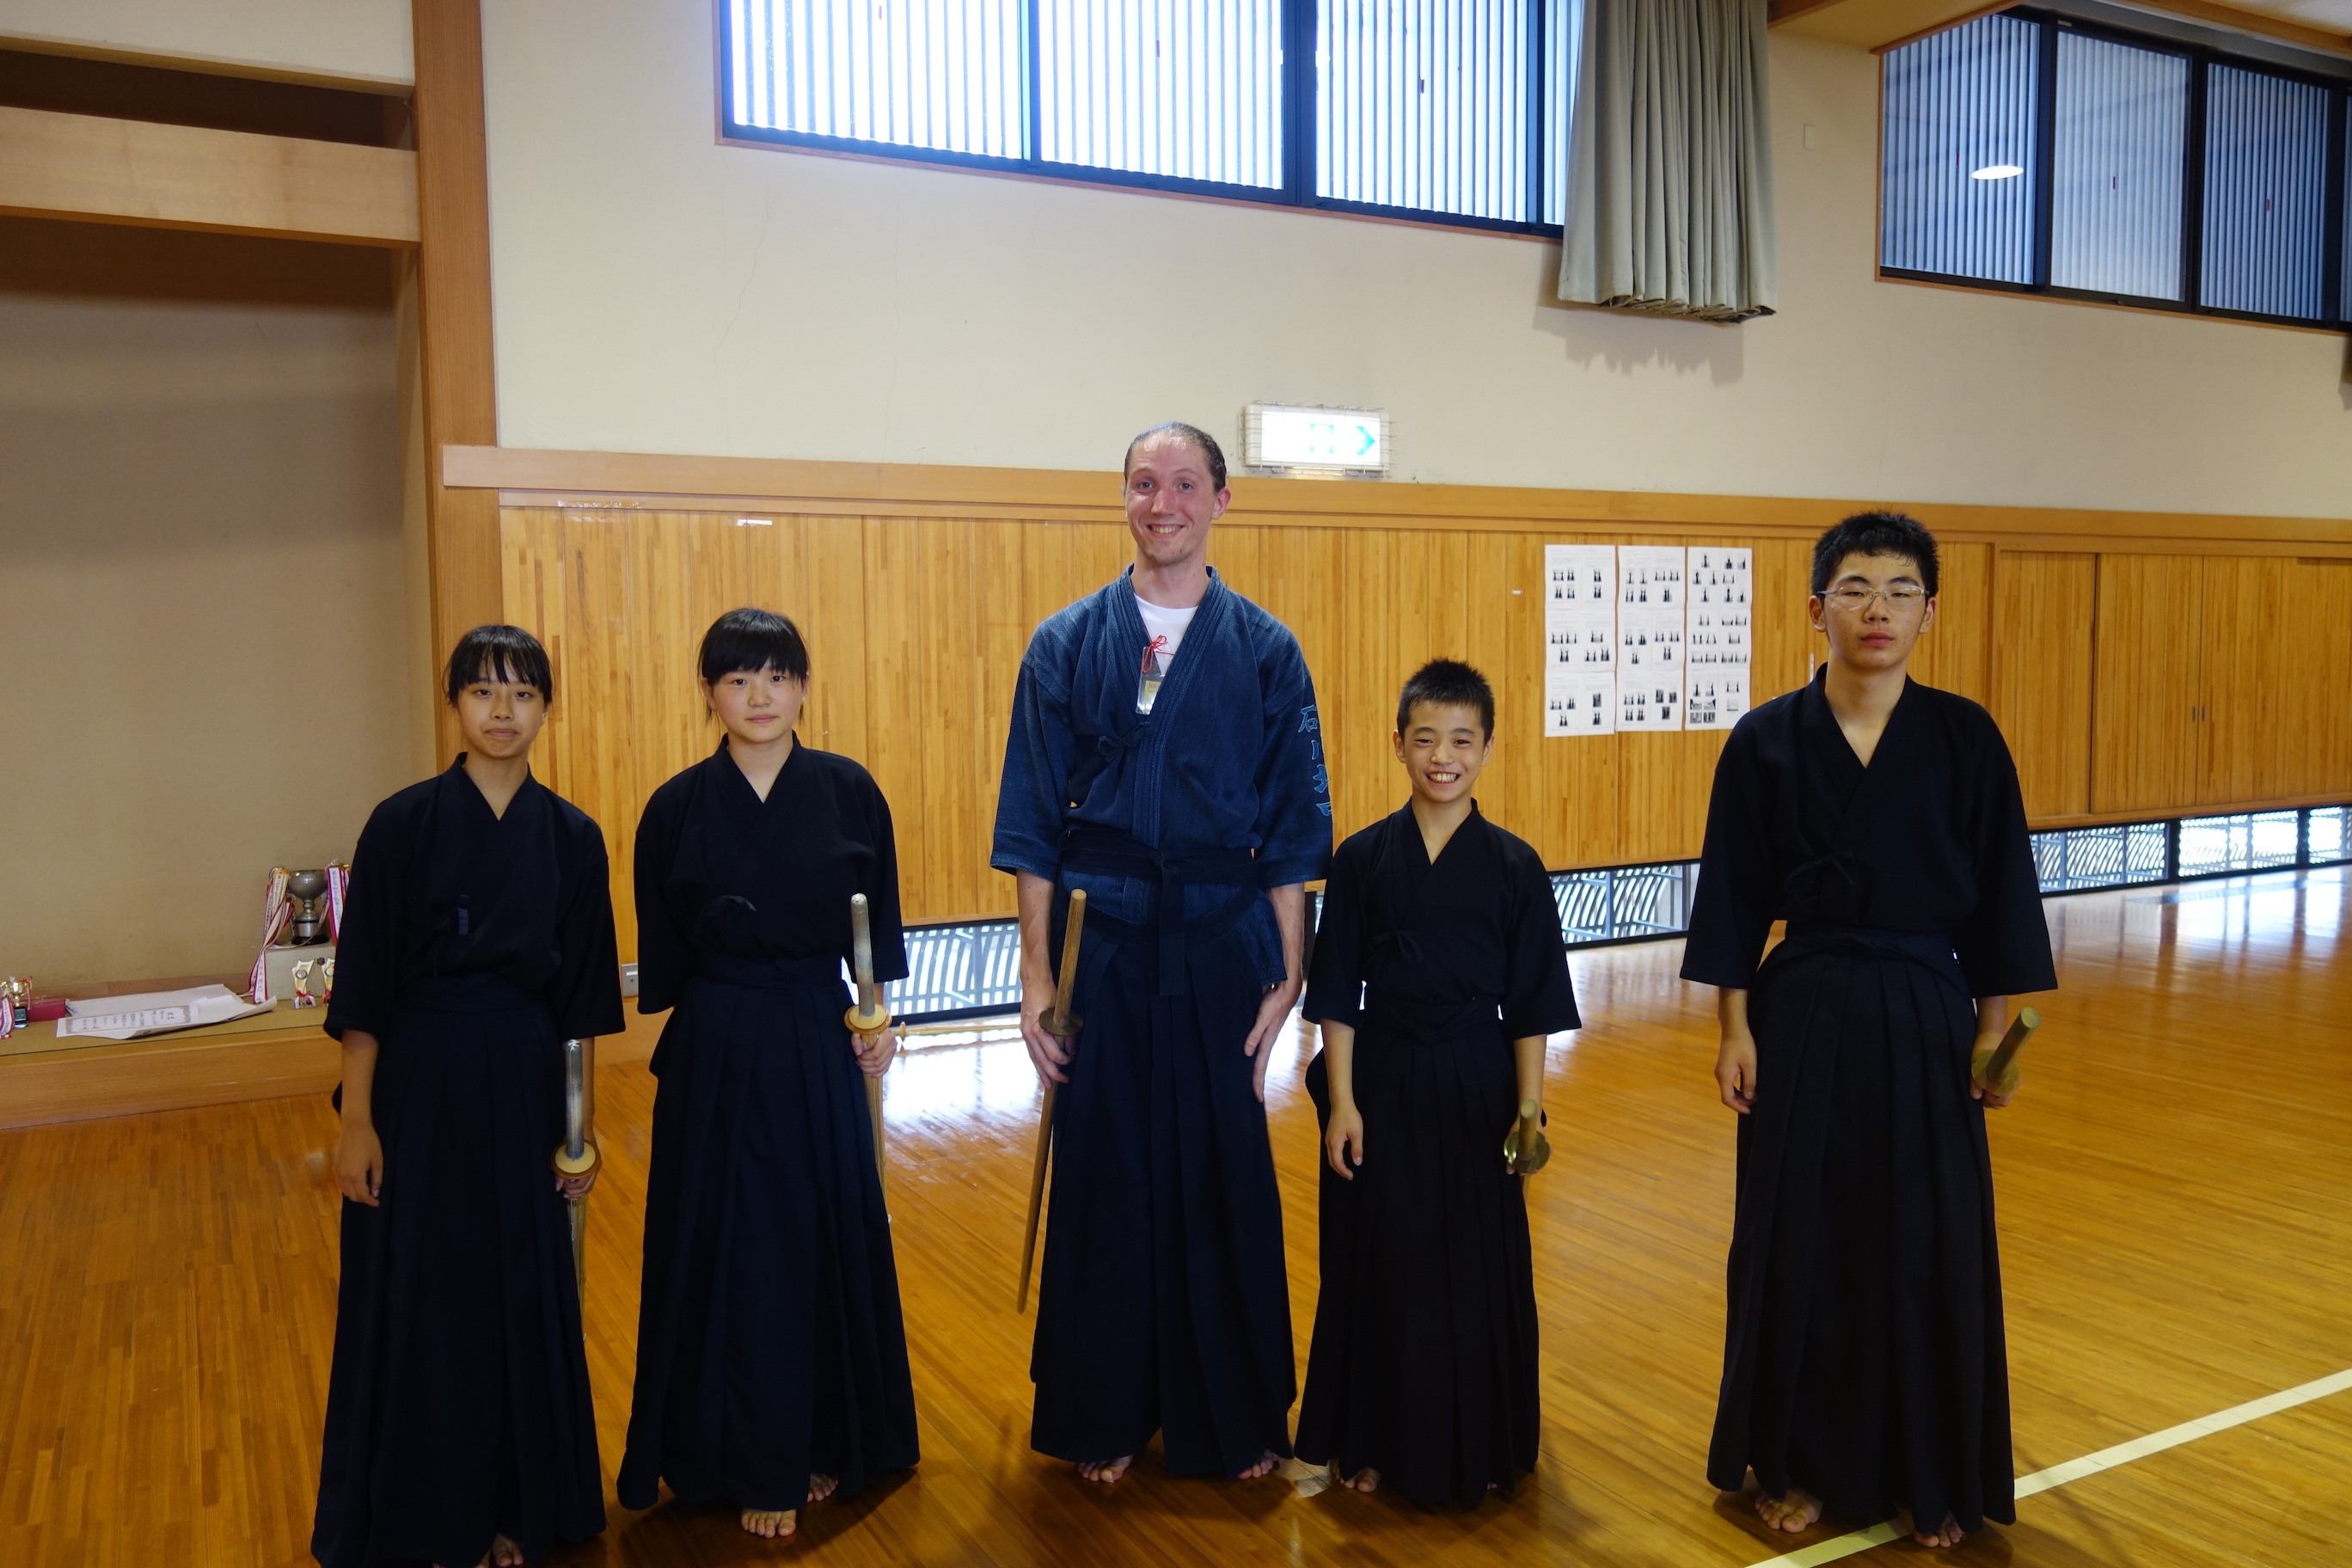 In Kawakita, the smallest region in Ishikawa province, participants join the kendo class of a local middle school.